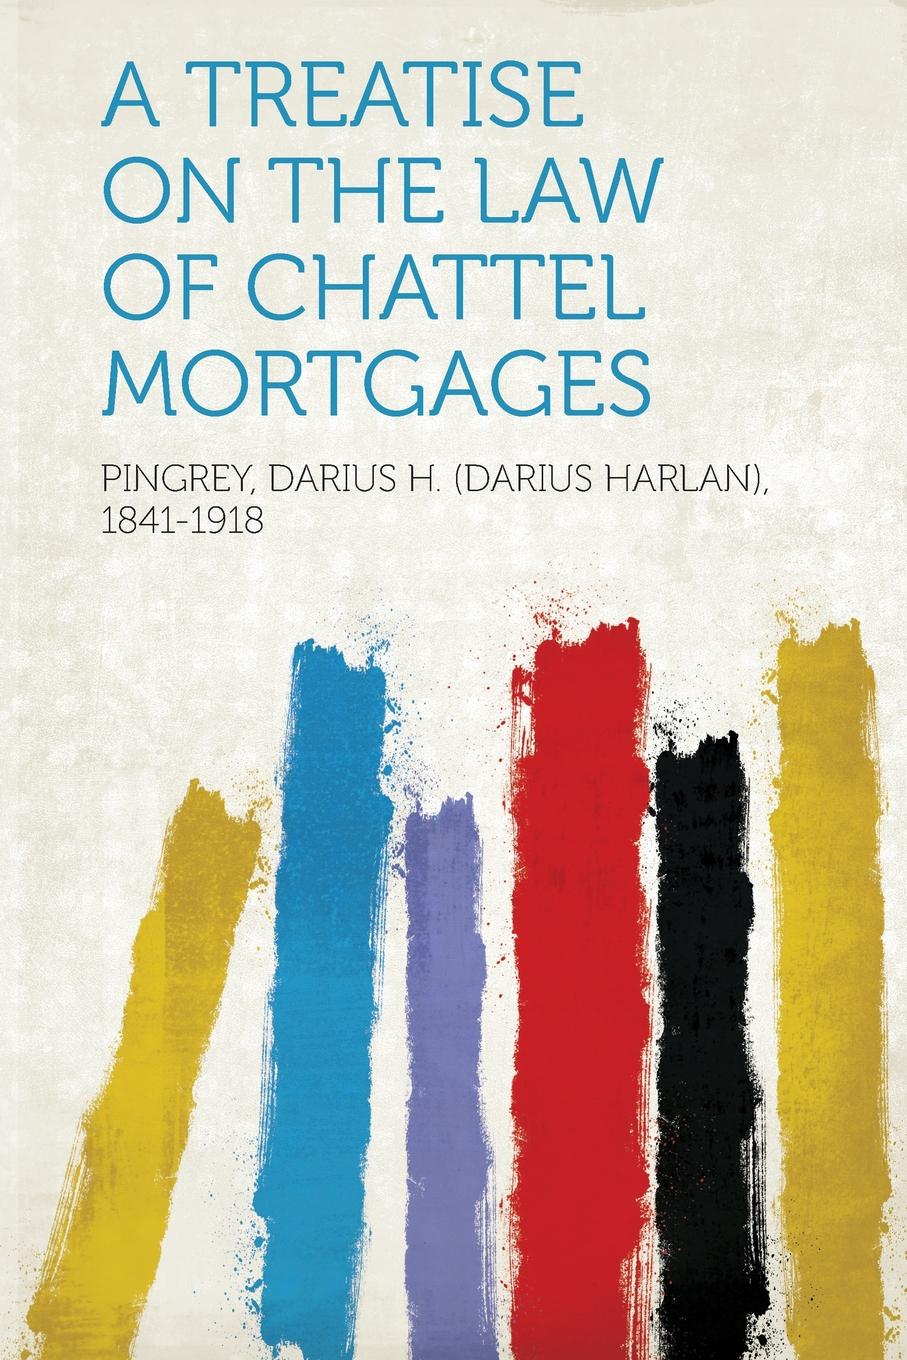 Pingrey Darius H. (Darius Ha 1841-1918 A Treatise on the Law of Chattel Mortgages